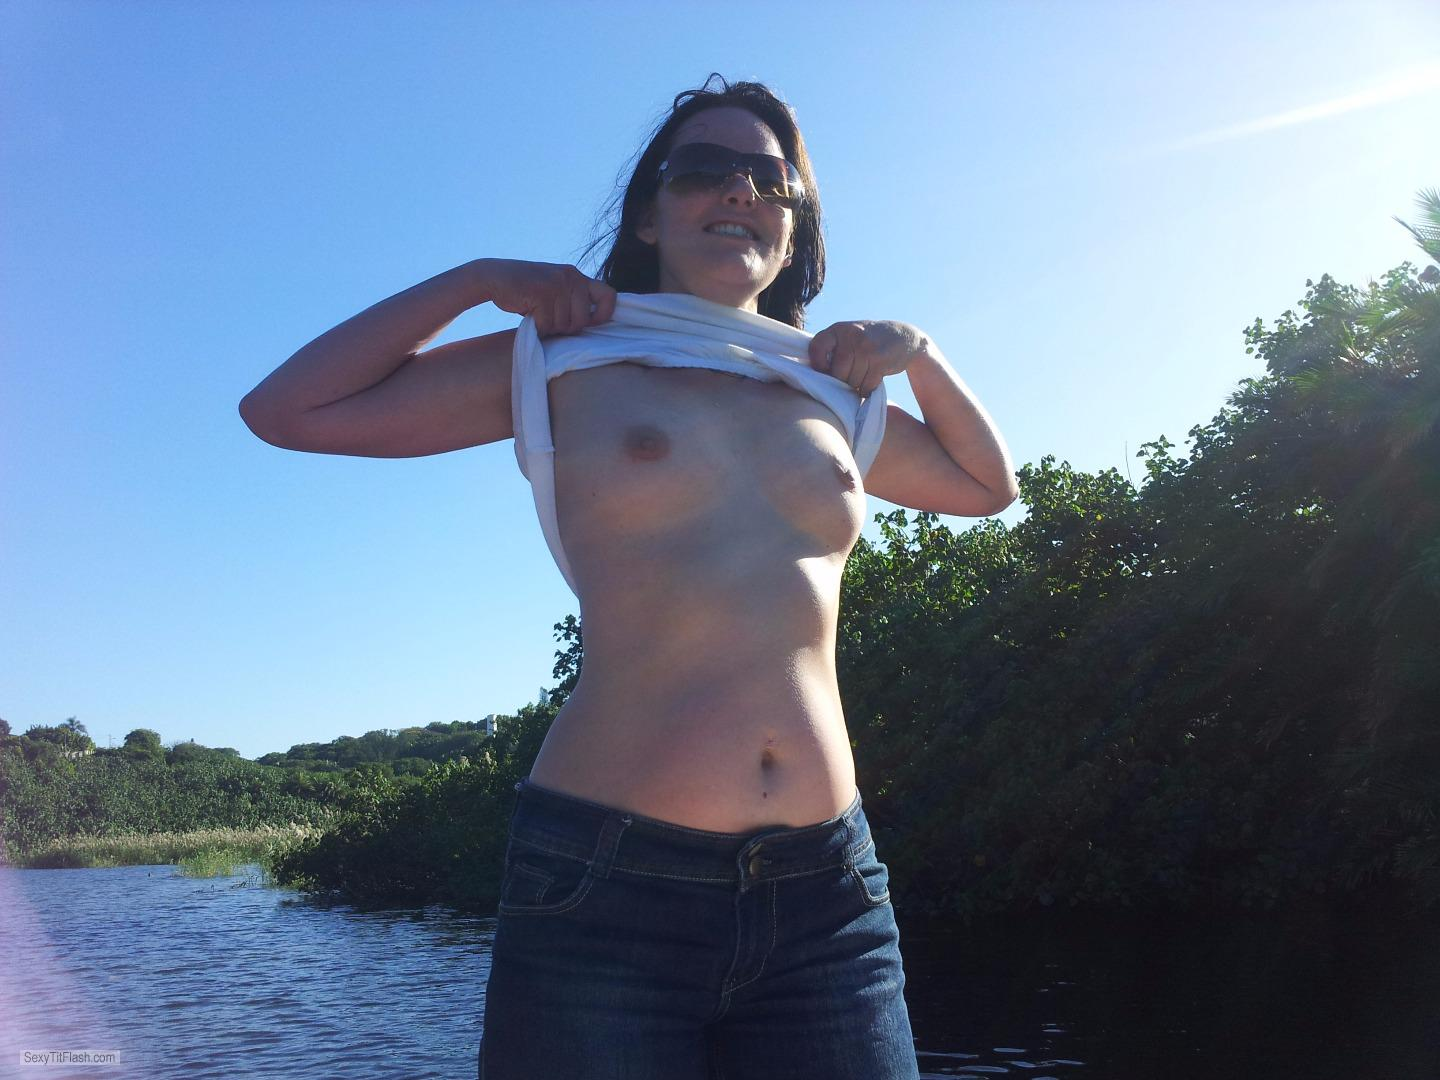 Tit Flash: My Small Tits - Topless Tits In The Sun from South Africa